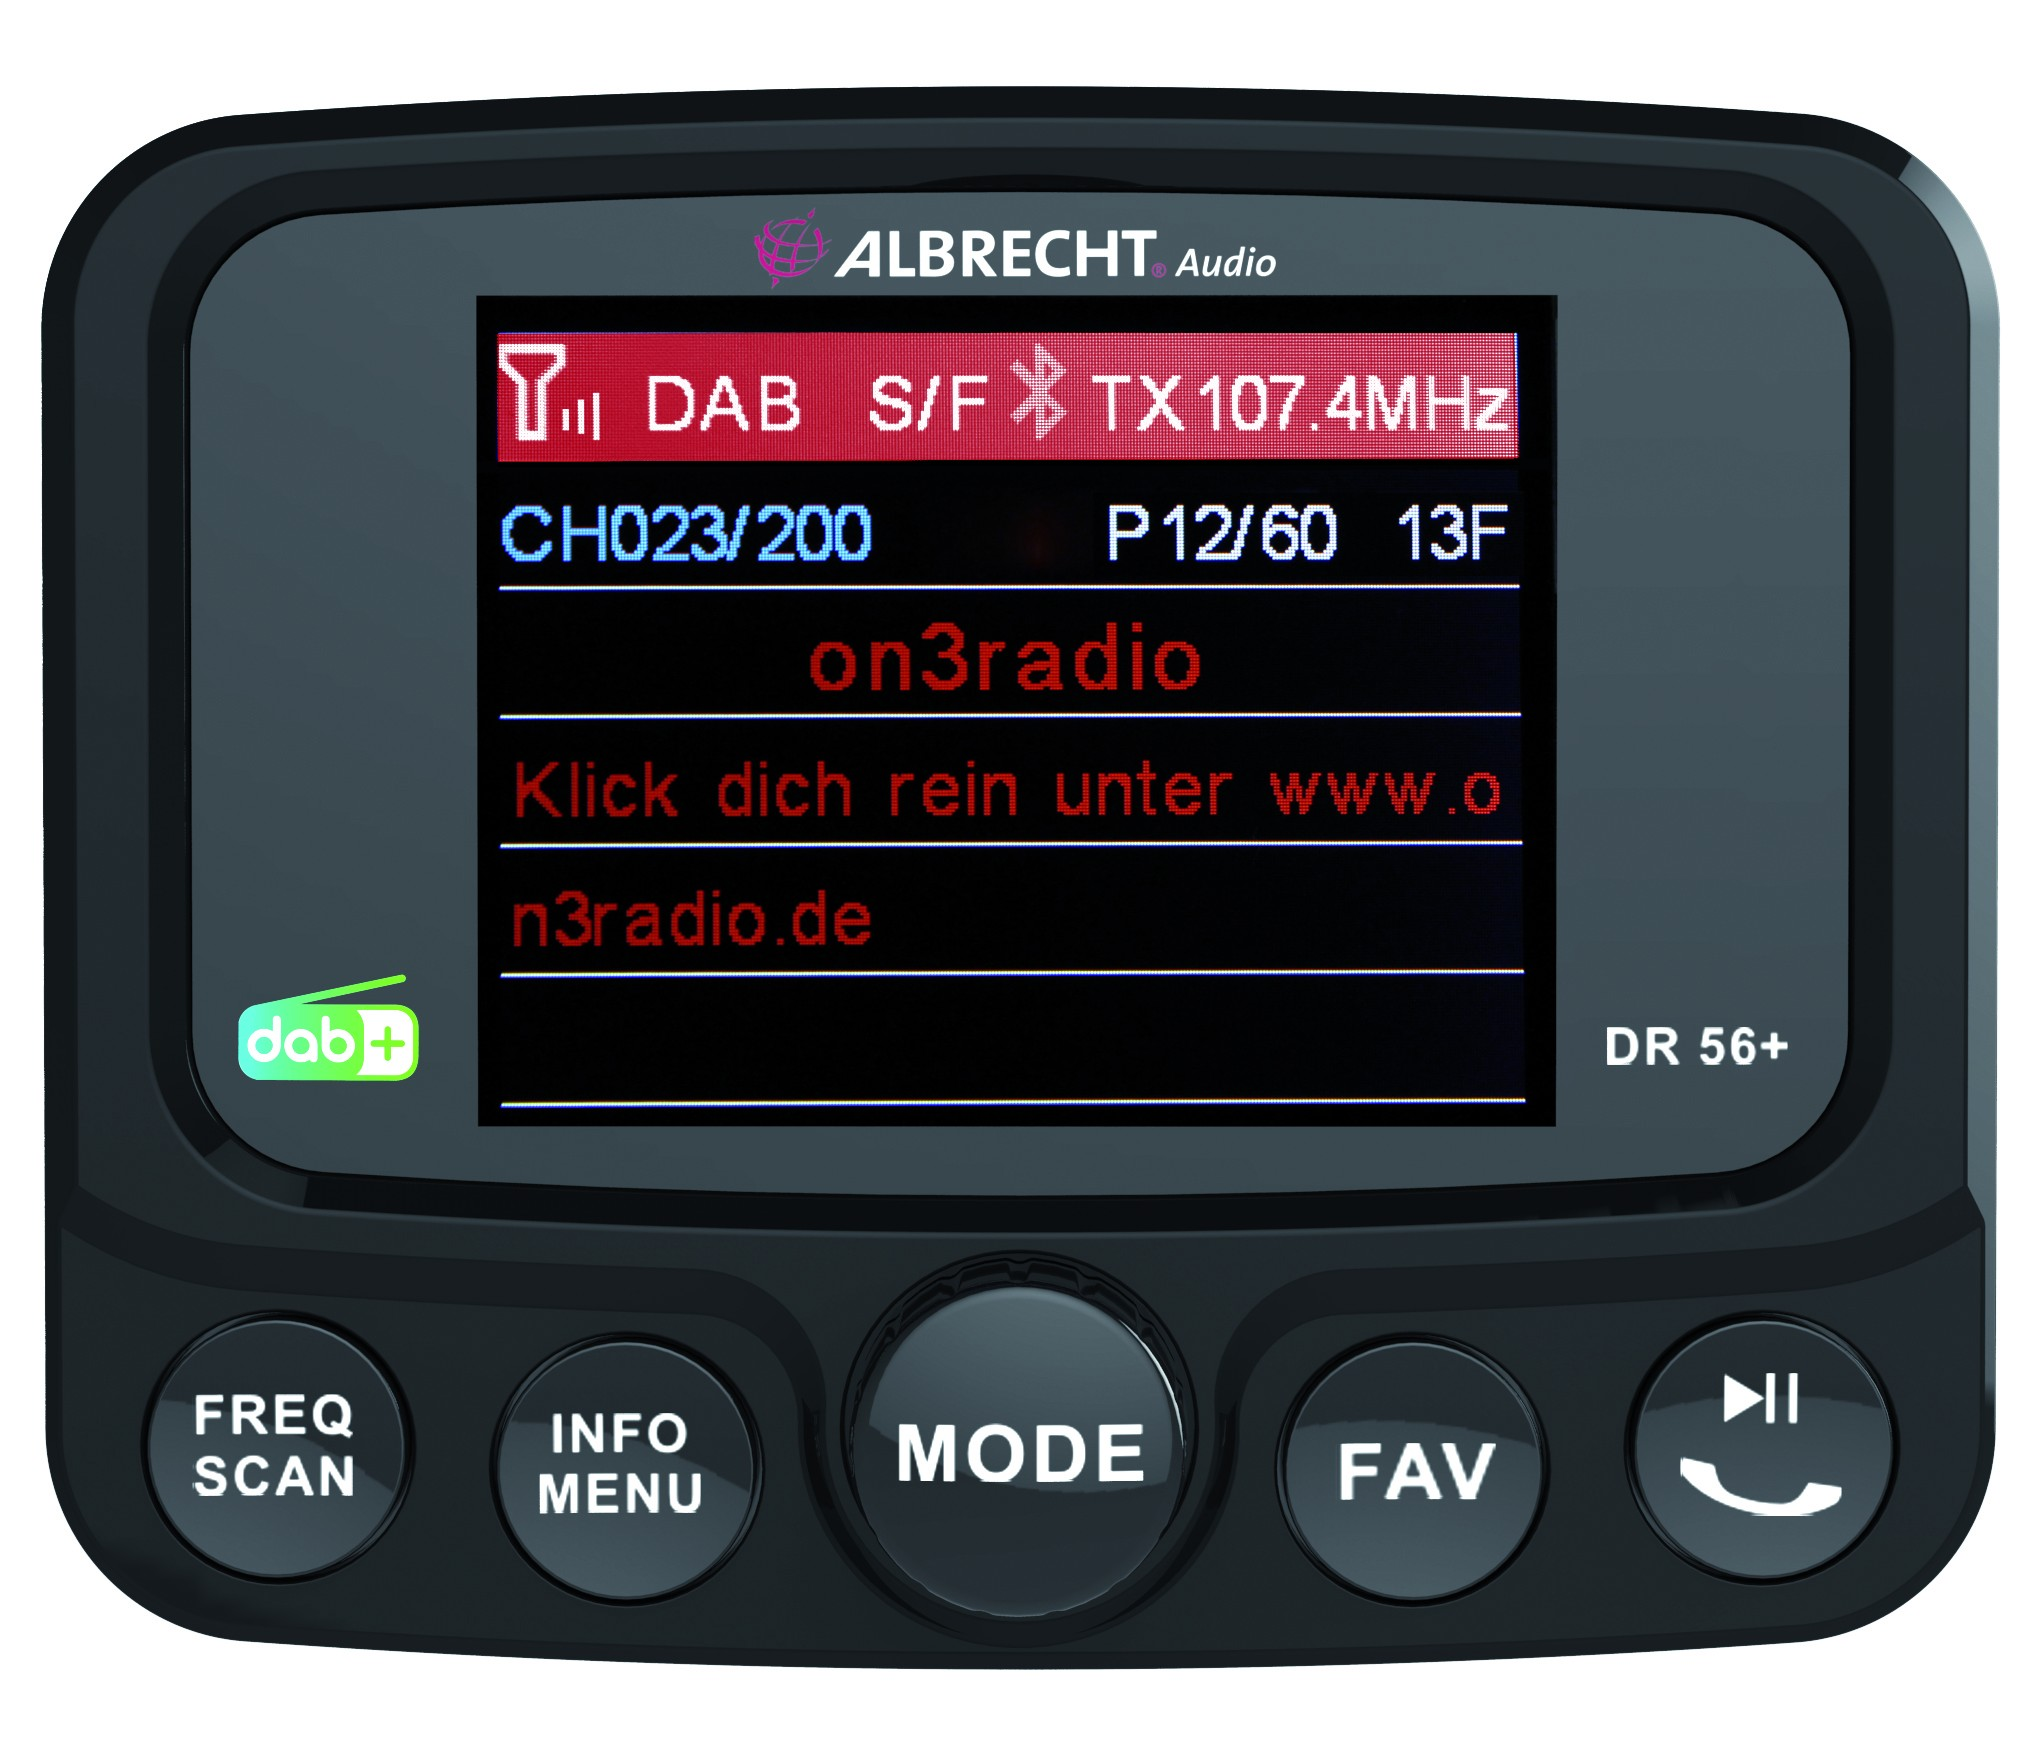 Albrecht DR 56+ DAB+ Autoradio Adapter mit Bluetooth, Freisprecheinrichtung, DAB+, Service Following